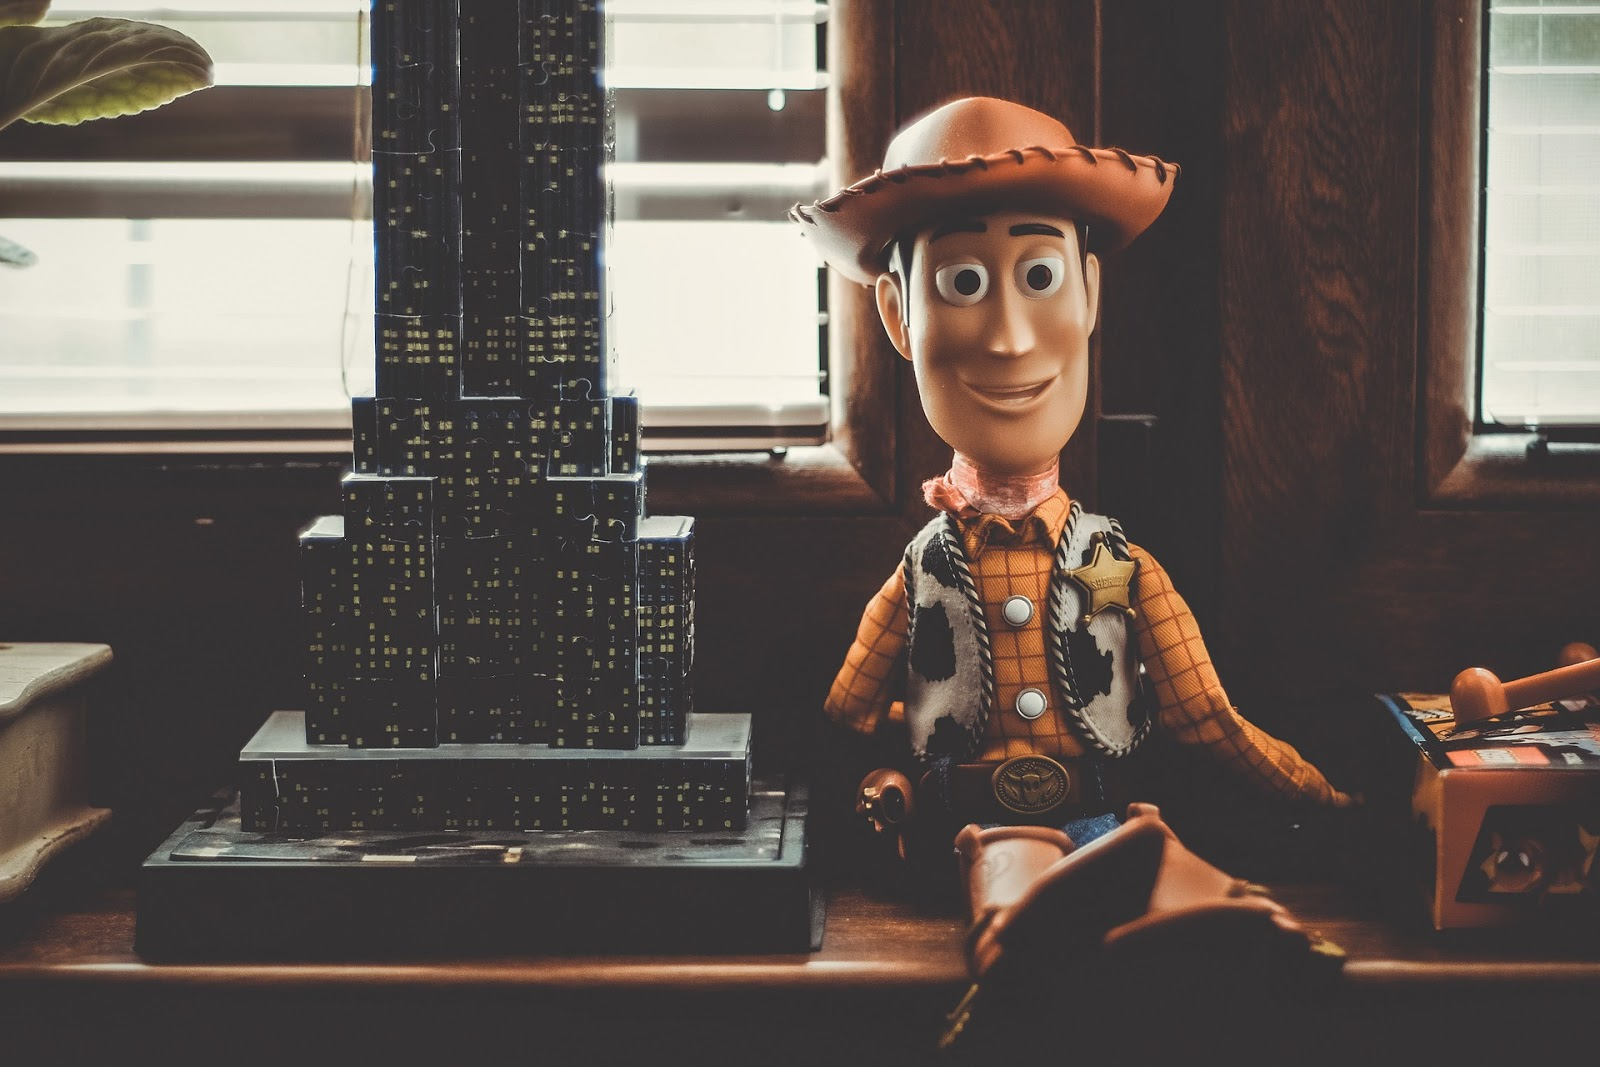 5. Toy Story